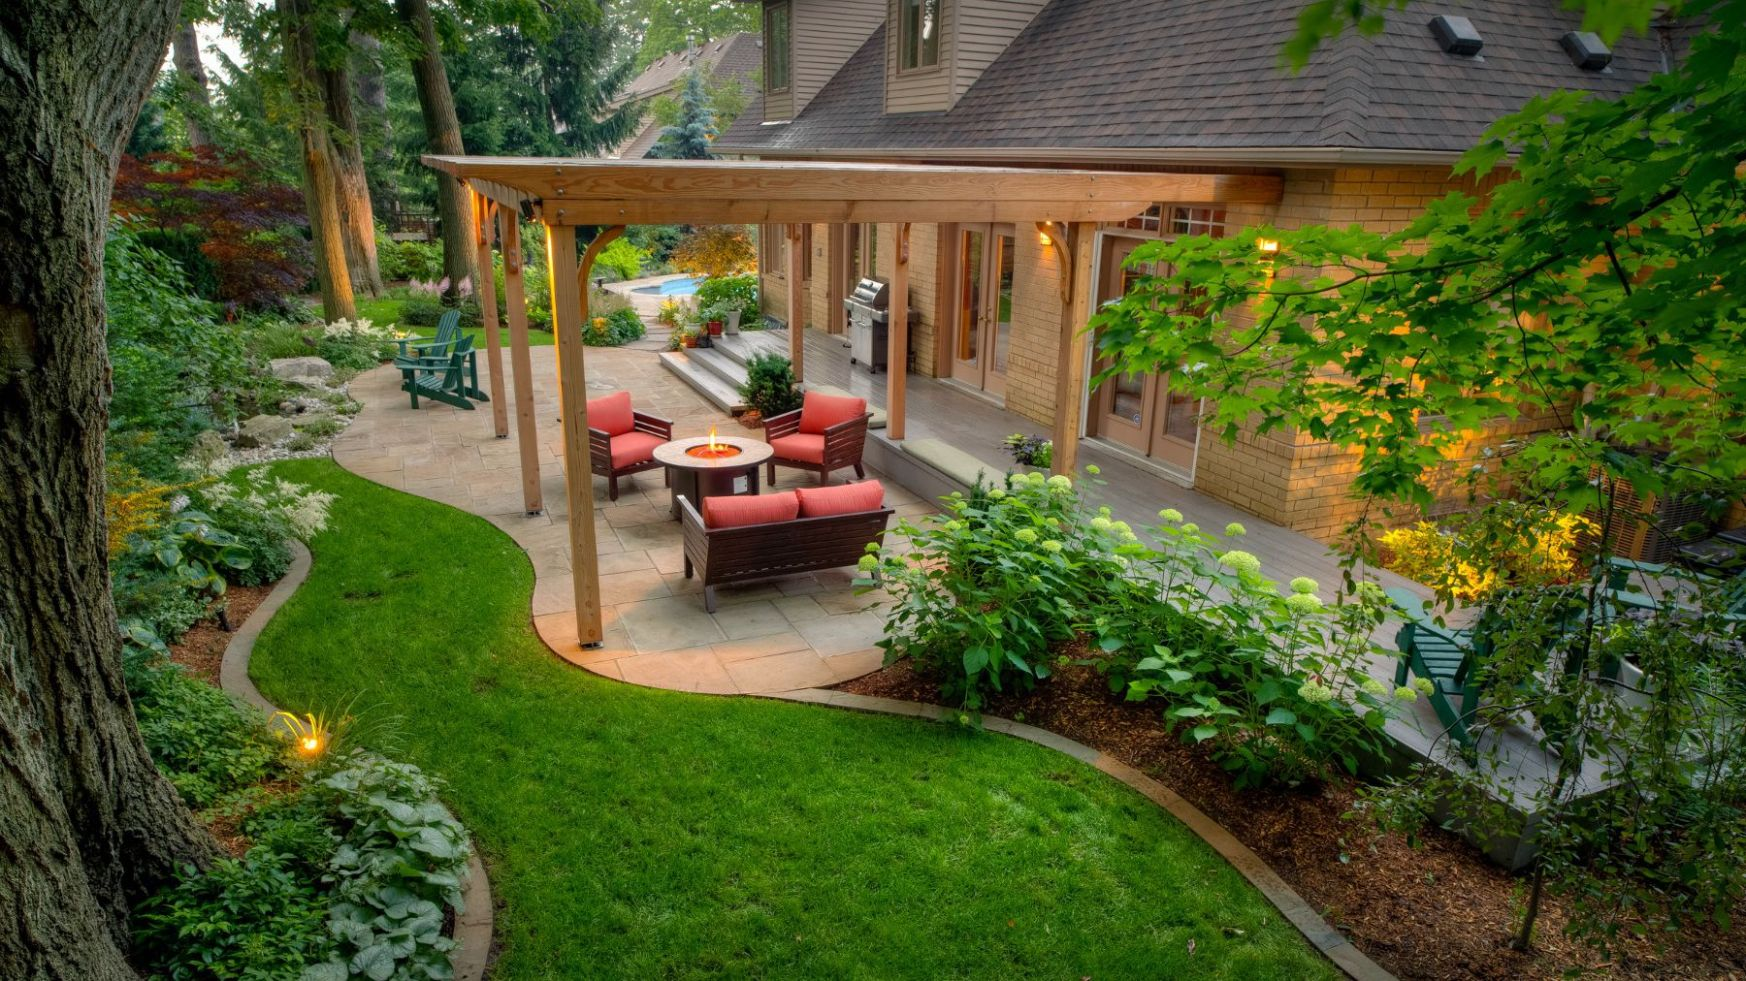 12 Backyard Landscaping Ideas to Inspire You